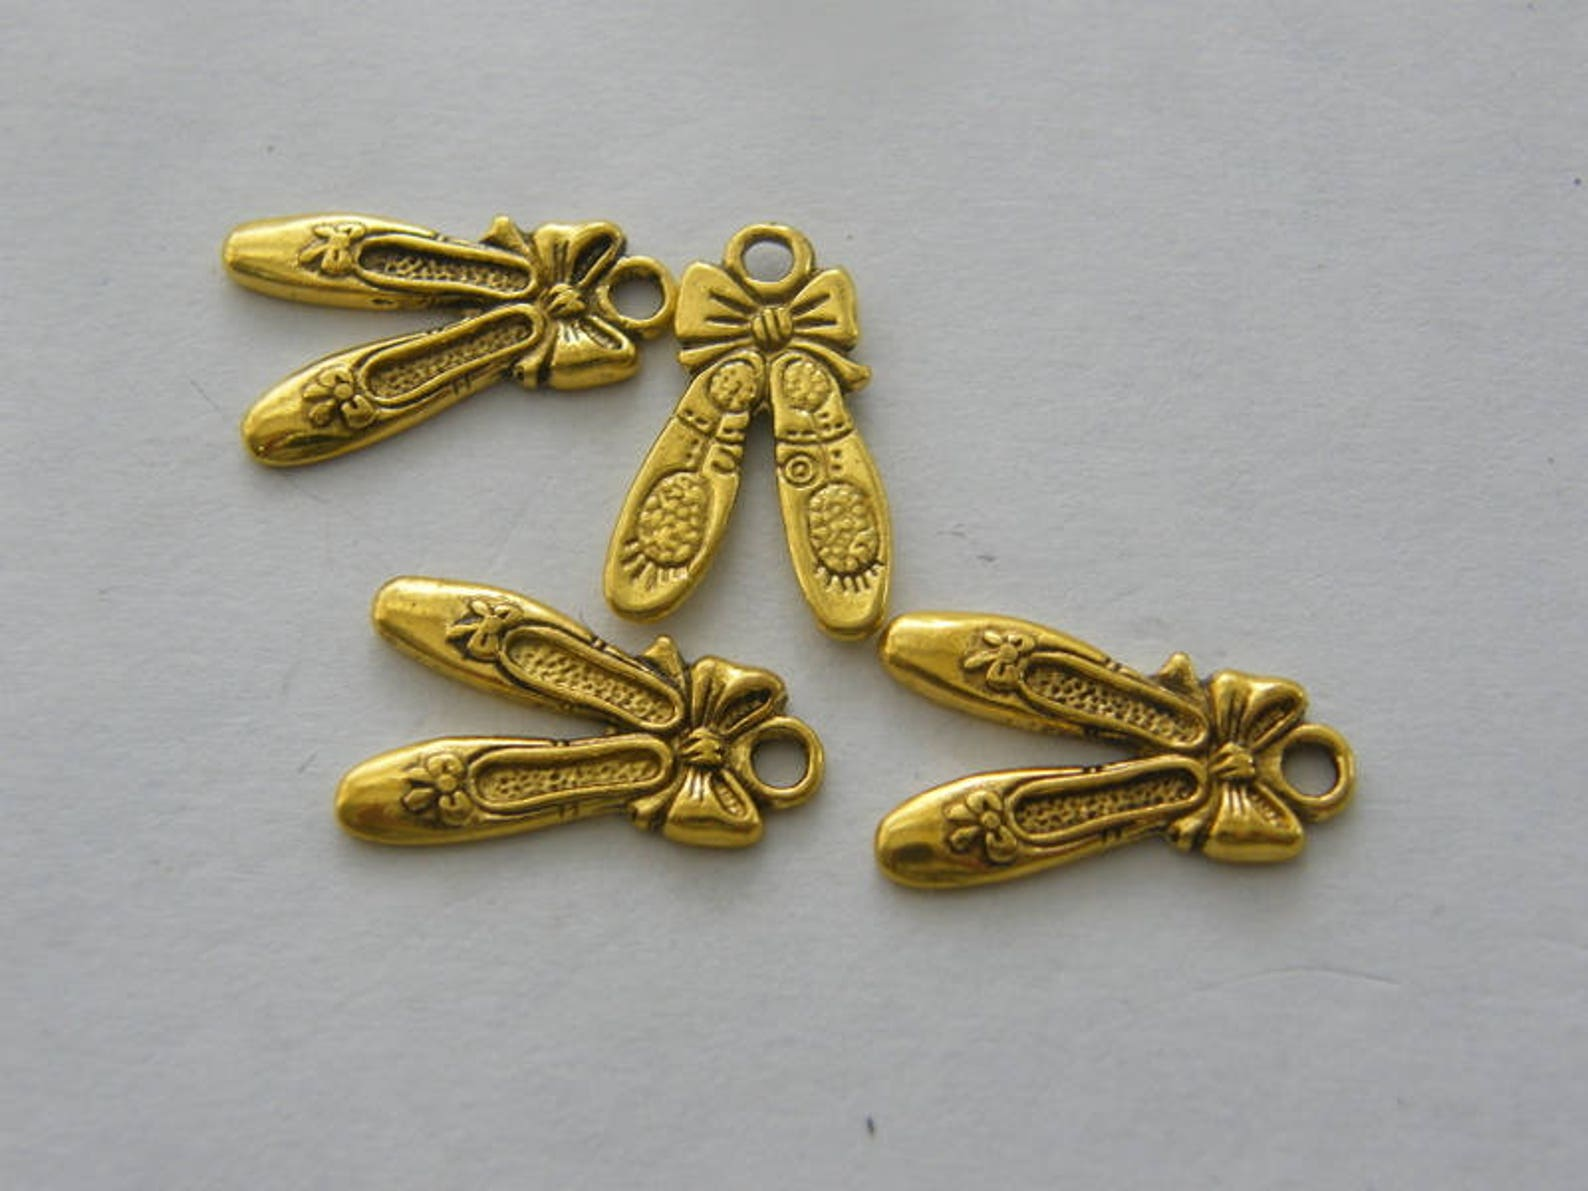 8 pair of ballet slippers charms antique gold tone gc377